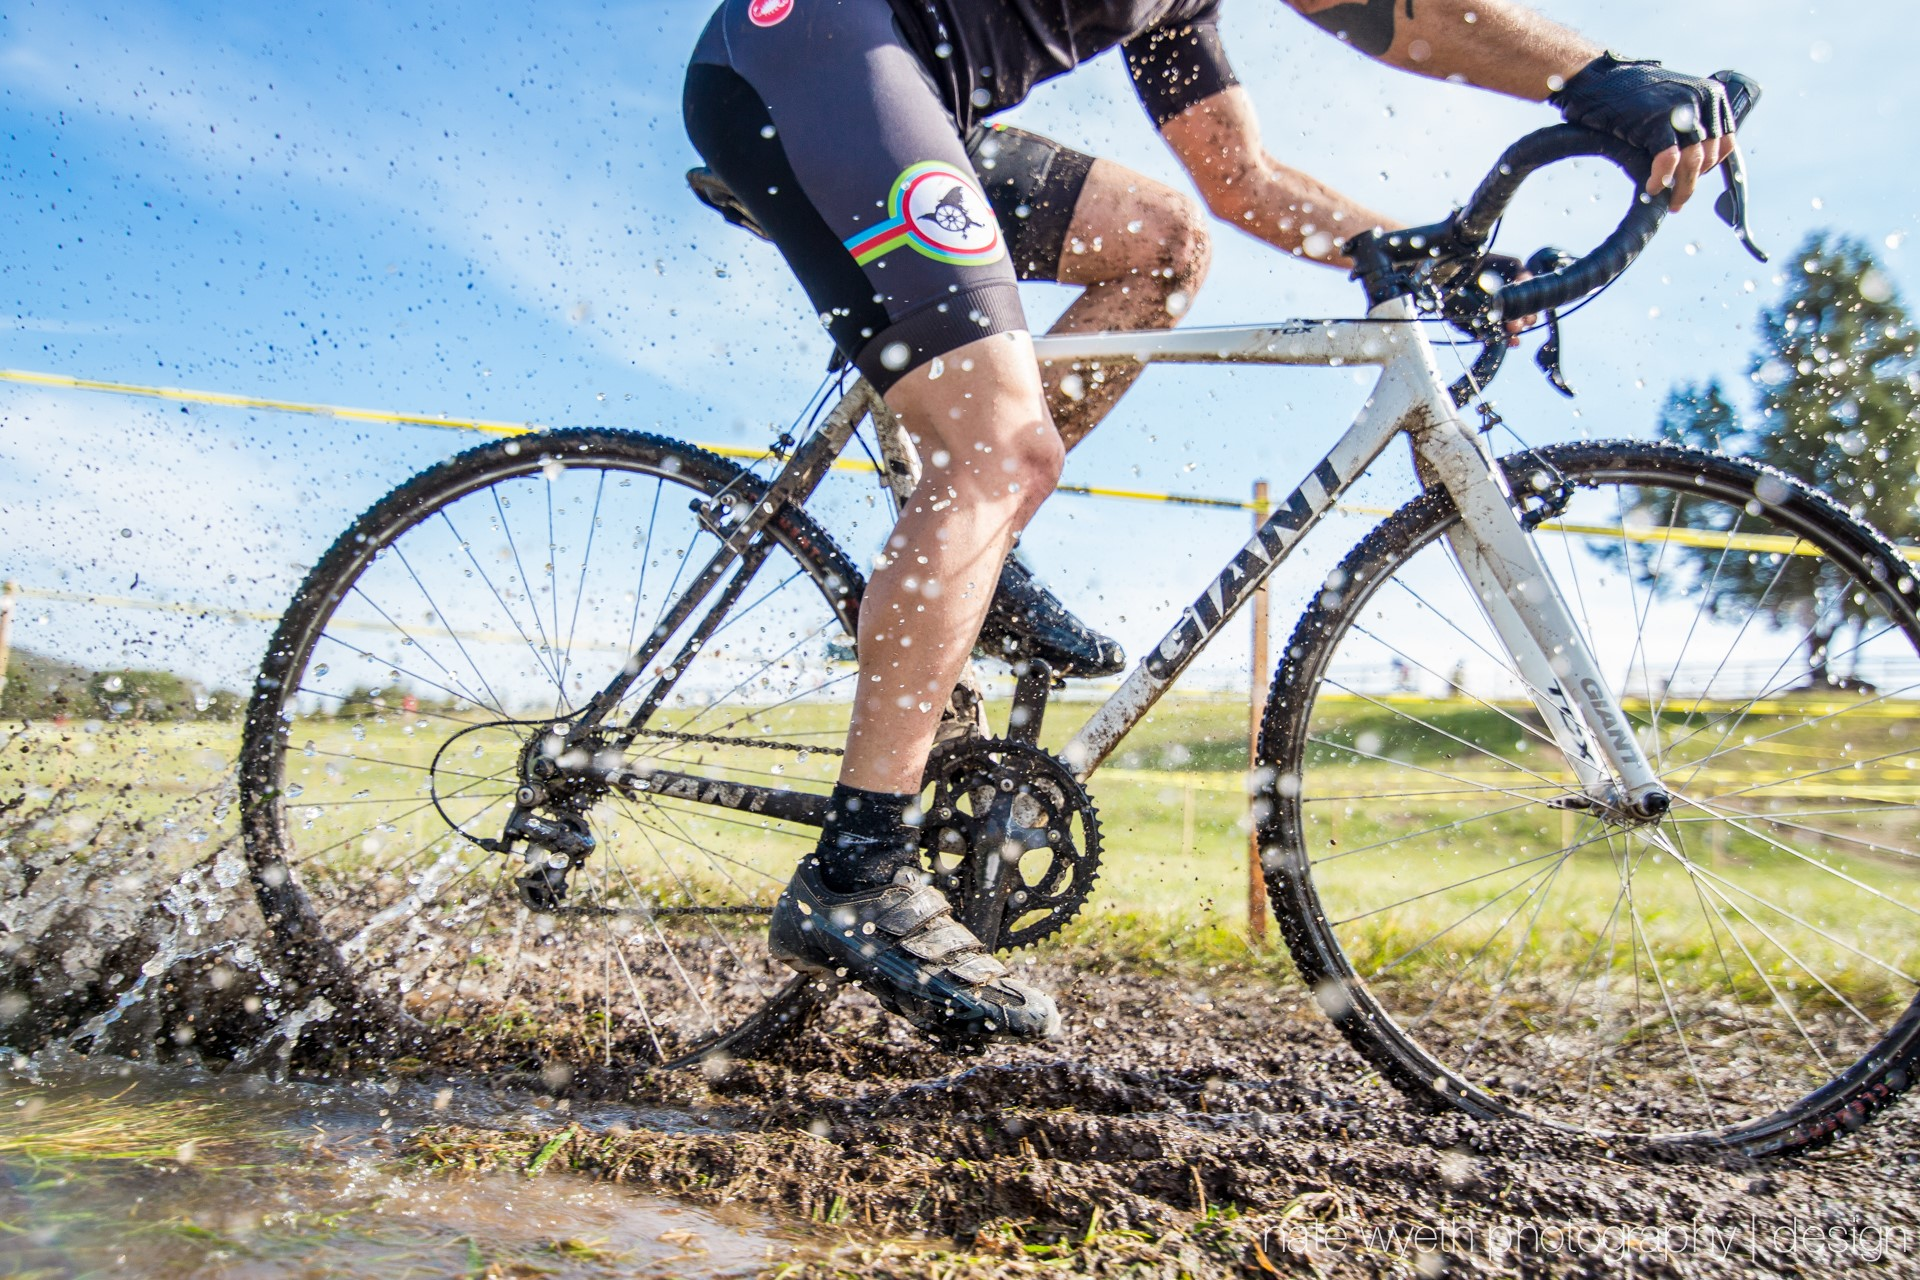 Mud cyclocross